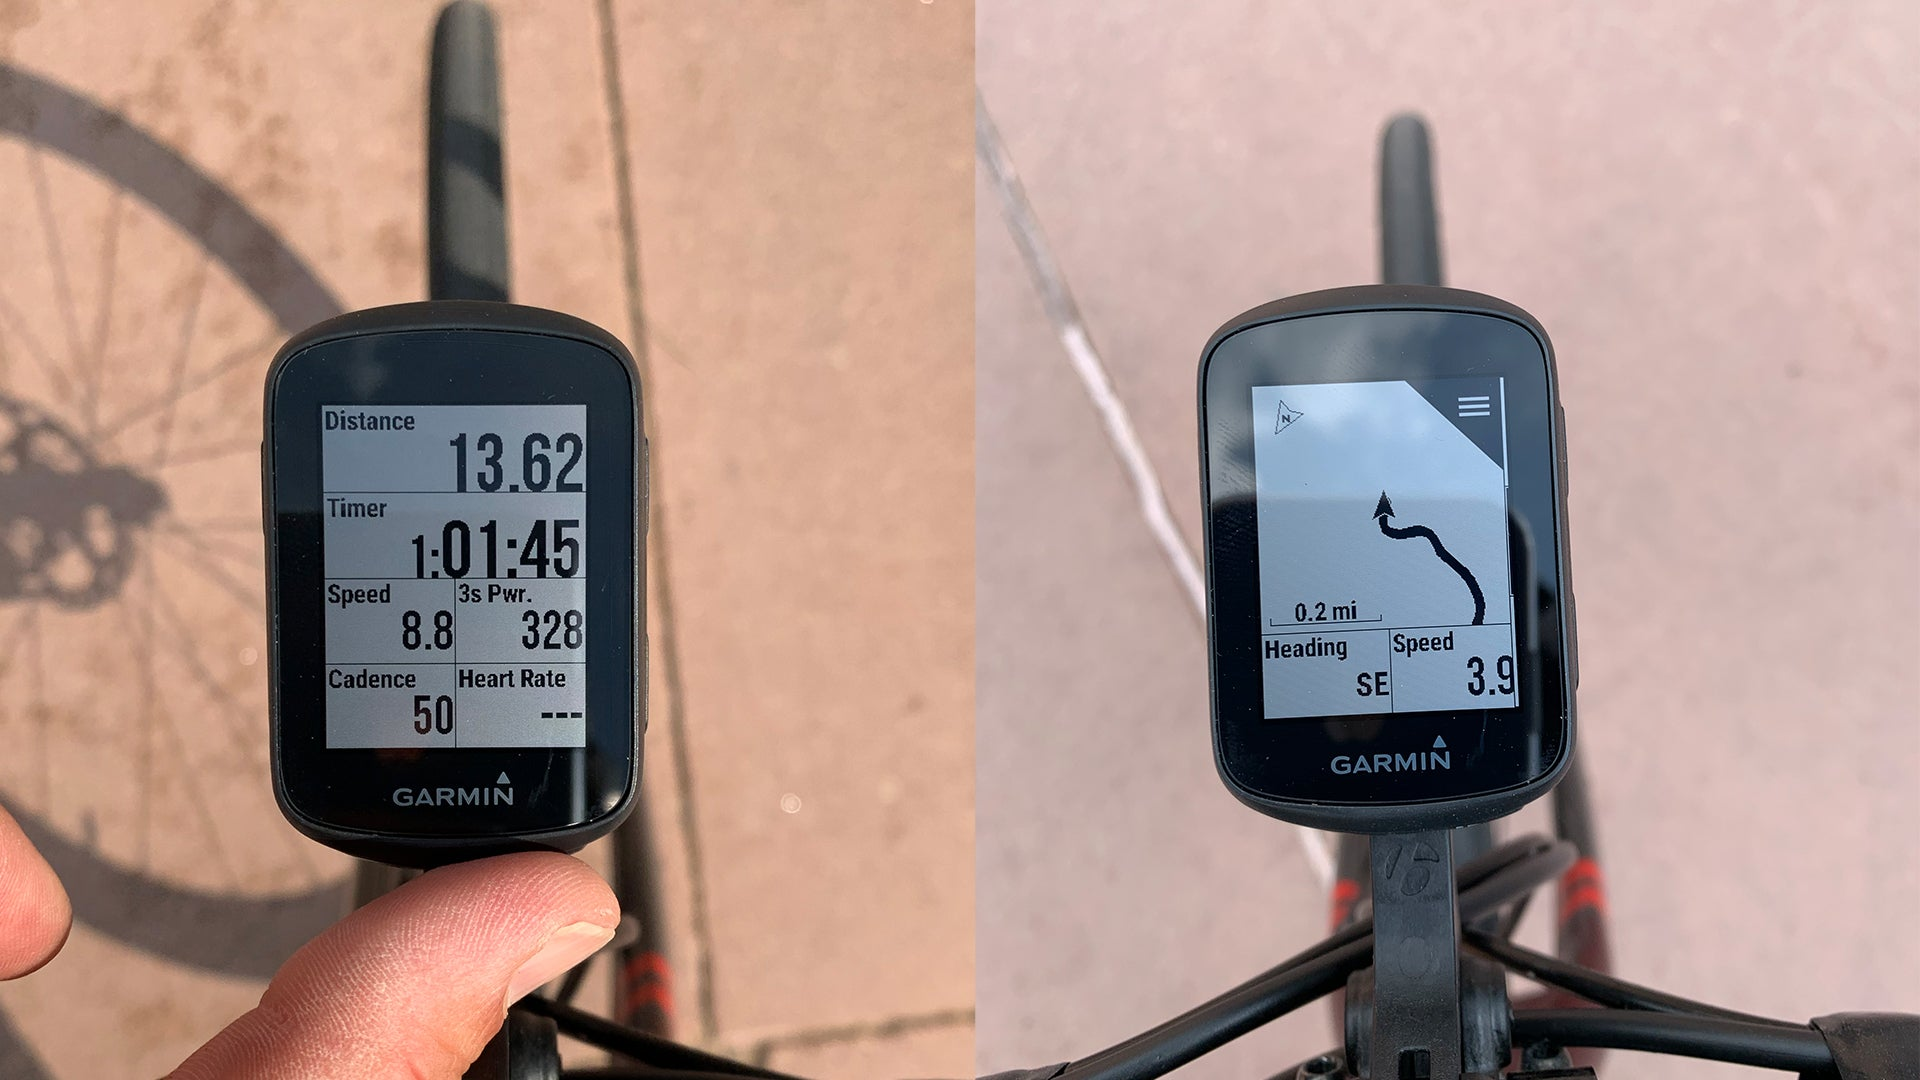 Left image is shot of Garmin Edge screen with stats displayed, right is map with direction and speed